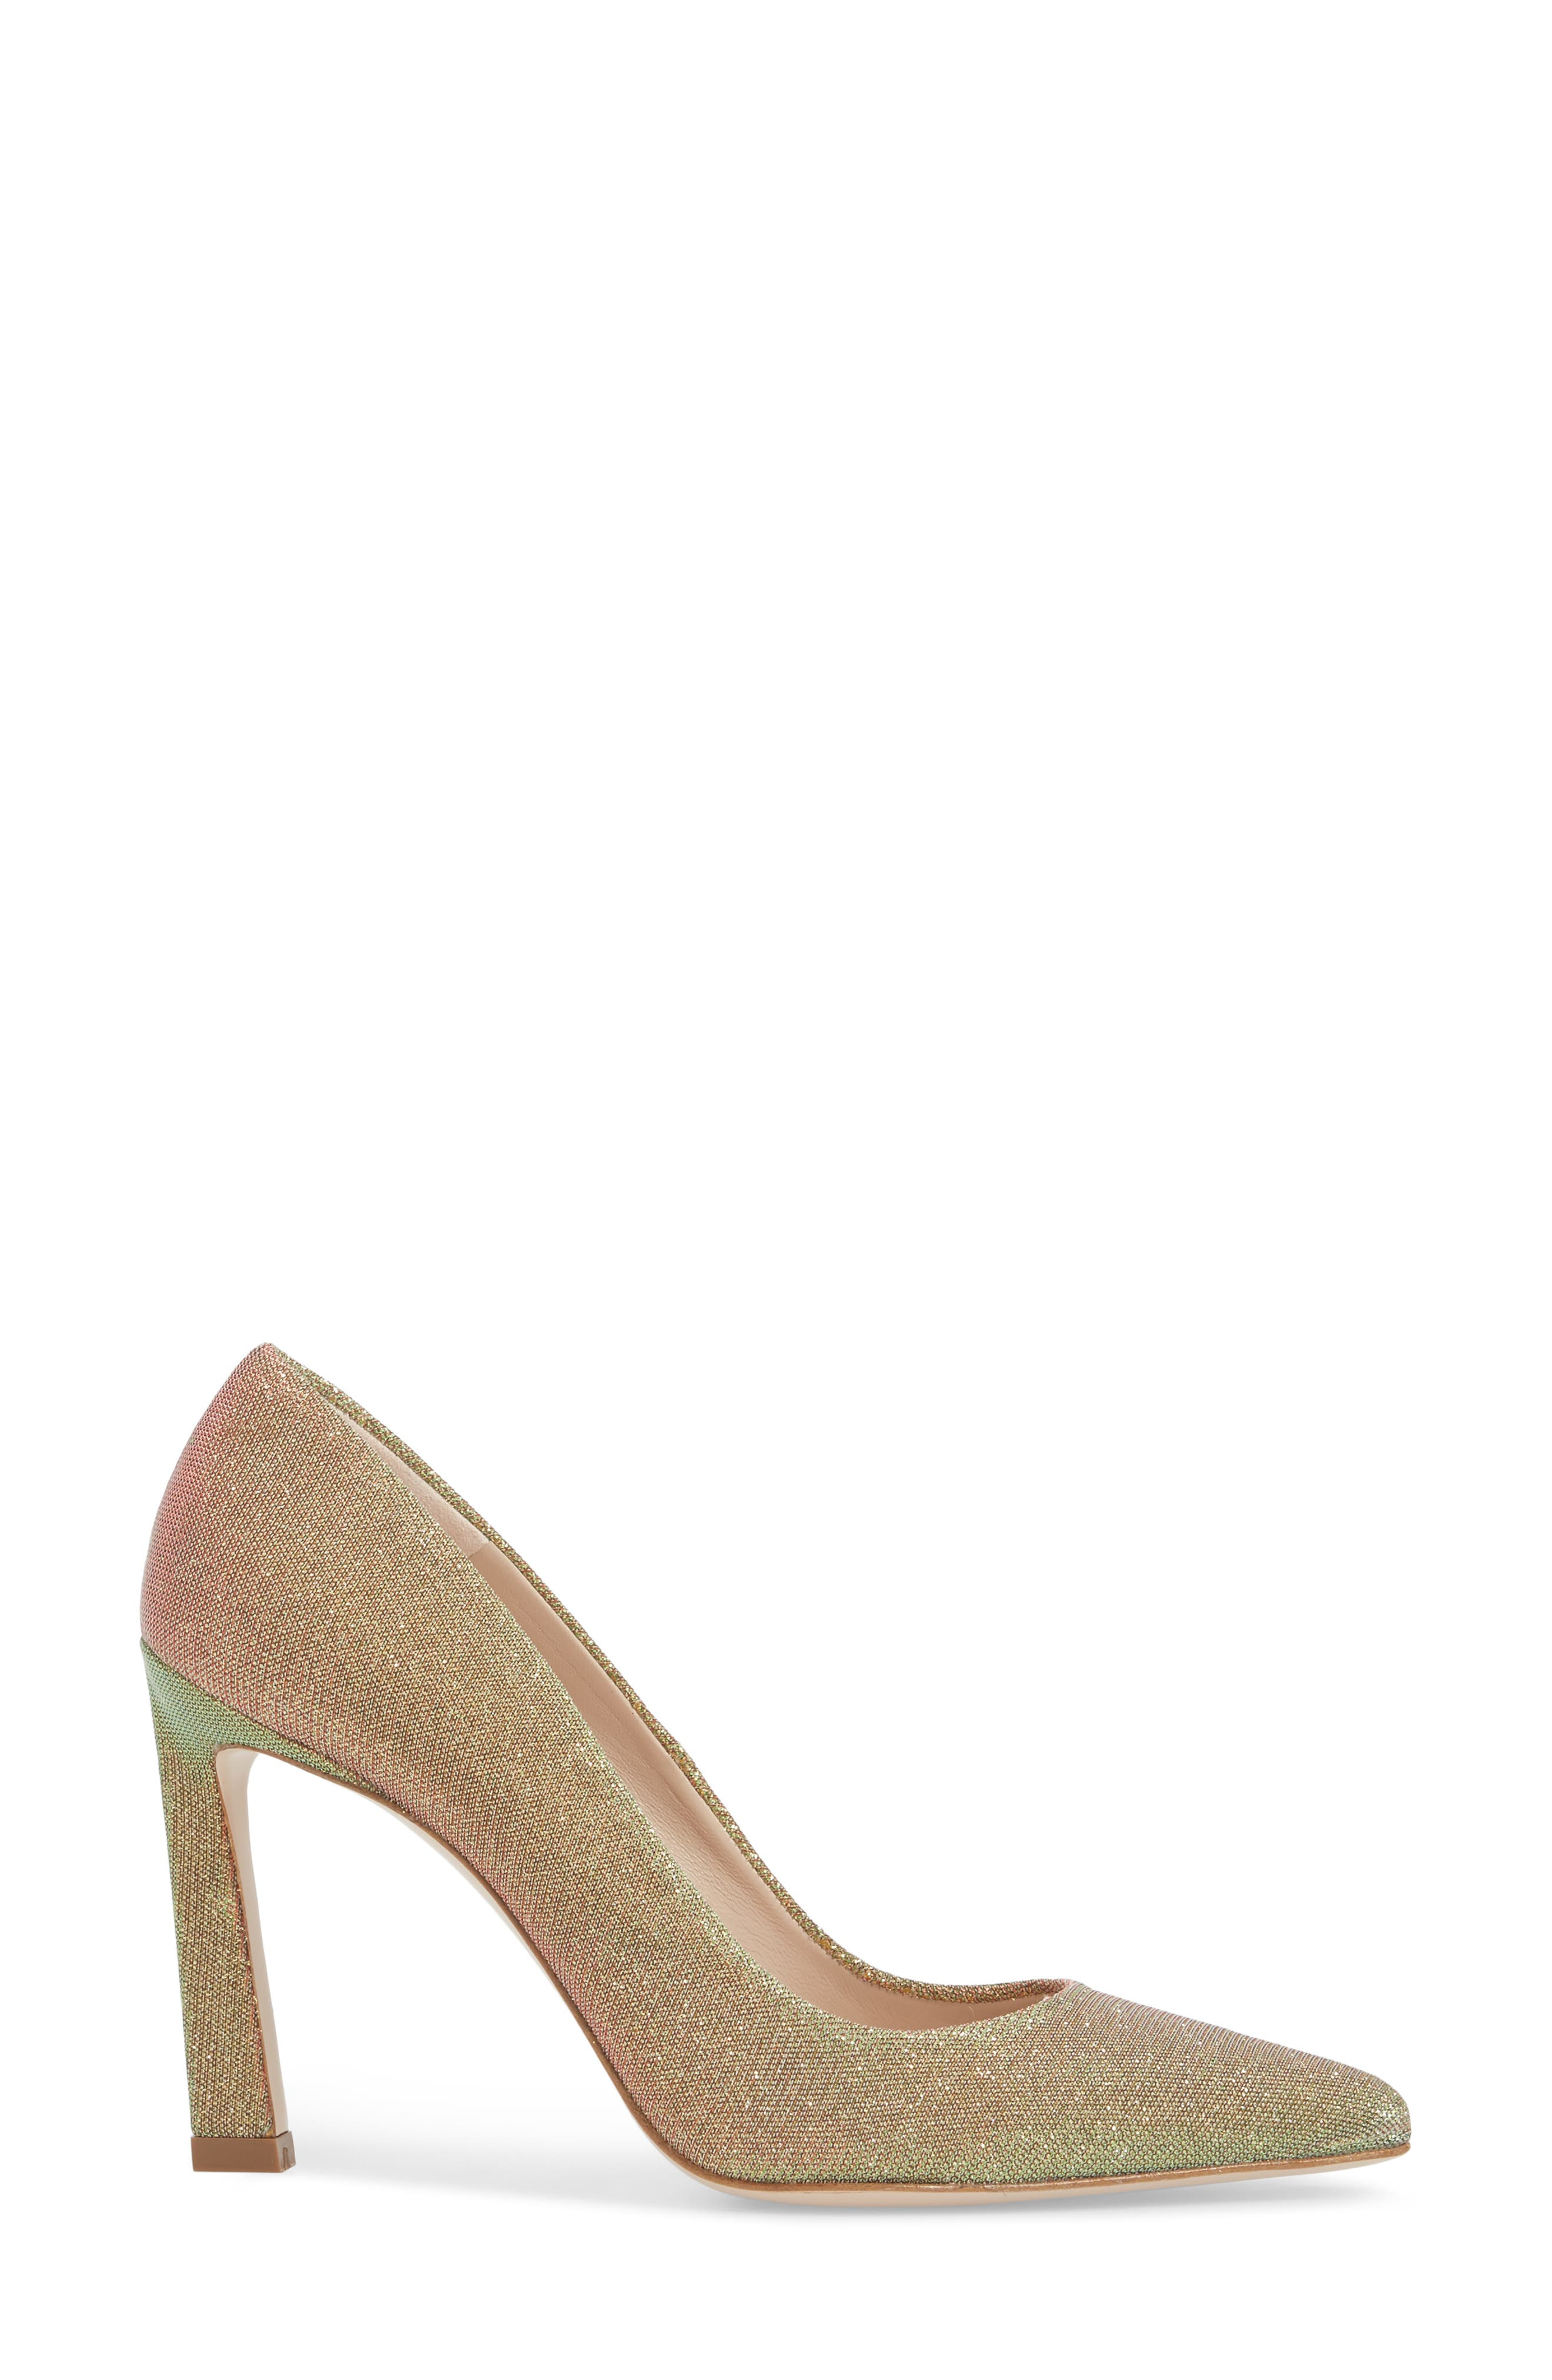 Chicster Pointy Toe Pump,                             Alternate thumbnail 3, color,                             Gold Multi Nighttime